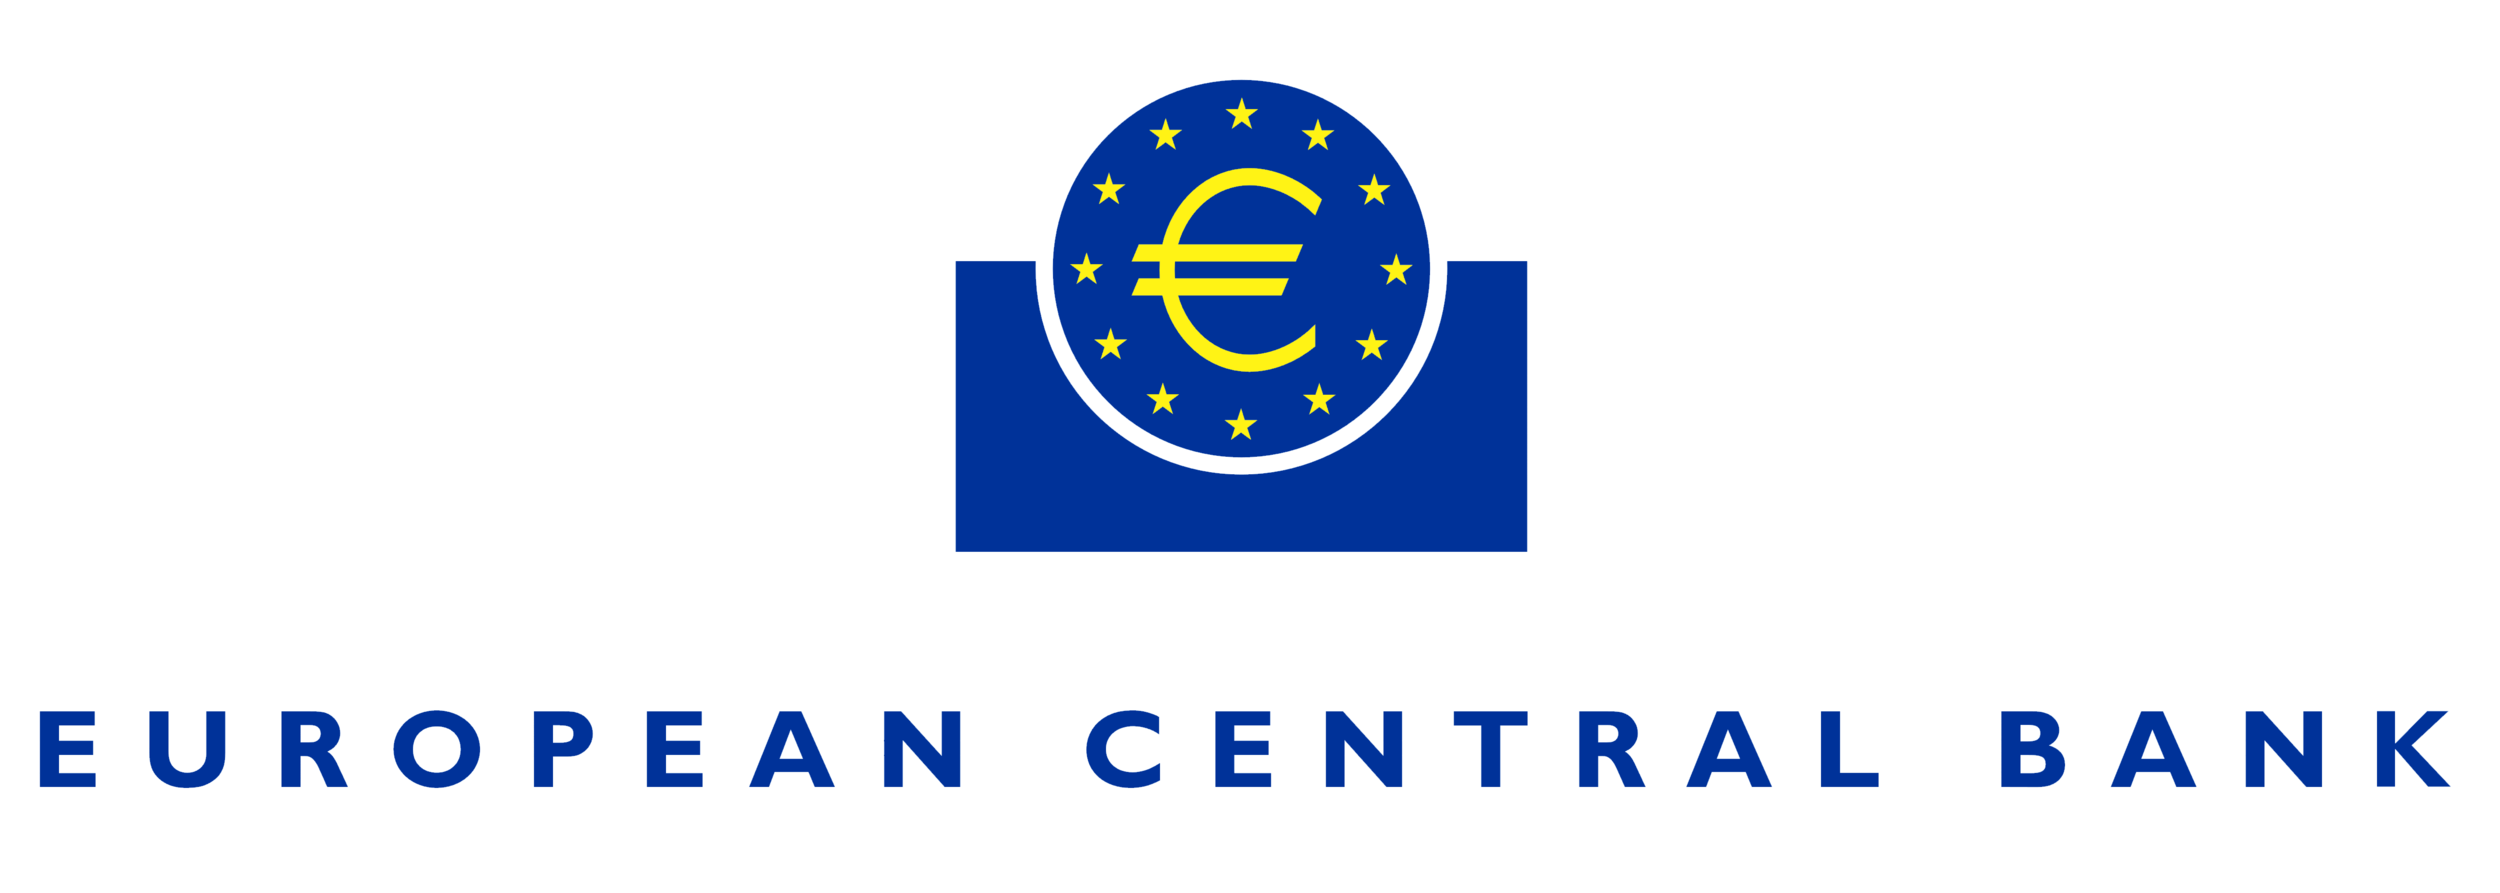 ECB_logo_European_Central_Bank.png